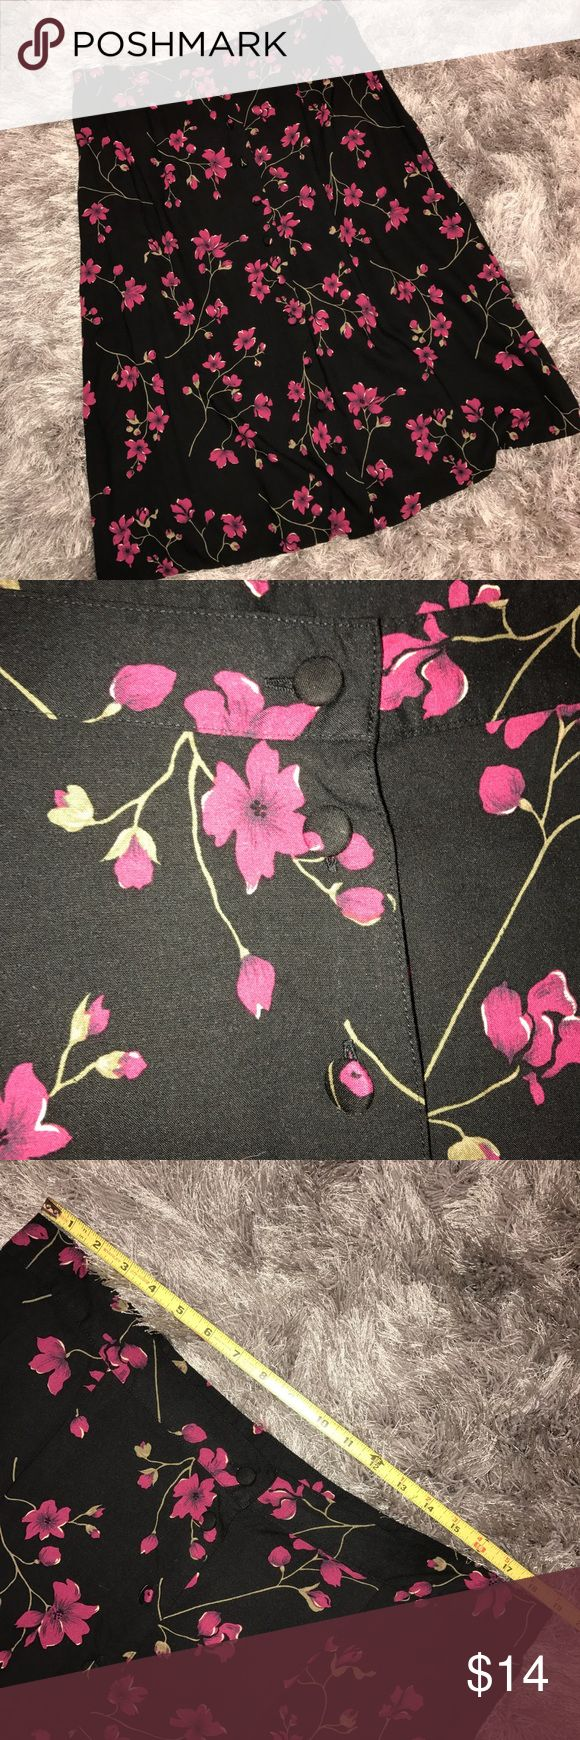 Sag Harbor calf length, button front skirt SZ 2X Gorgeous pink flowers on a black background. Cloth covered buttons down the front. Two elastic panels in waistband. Sag Harbor Skirts Midi